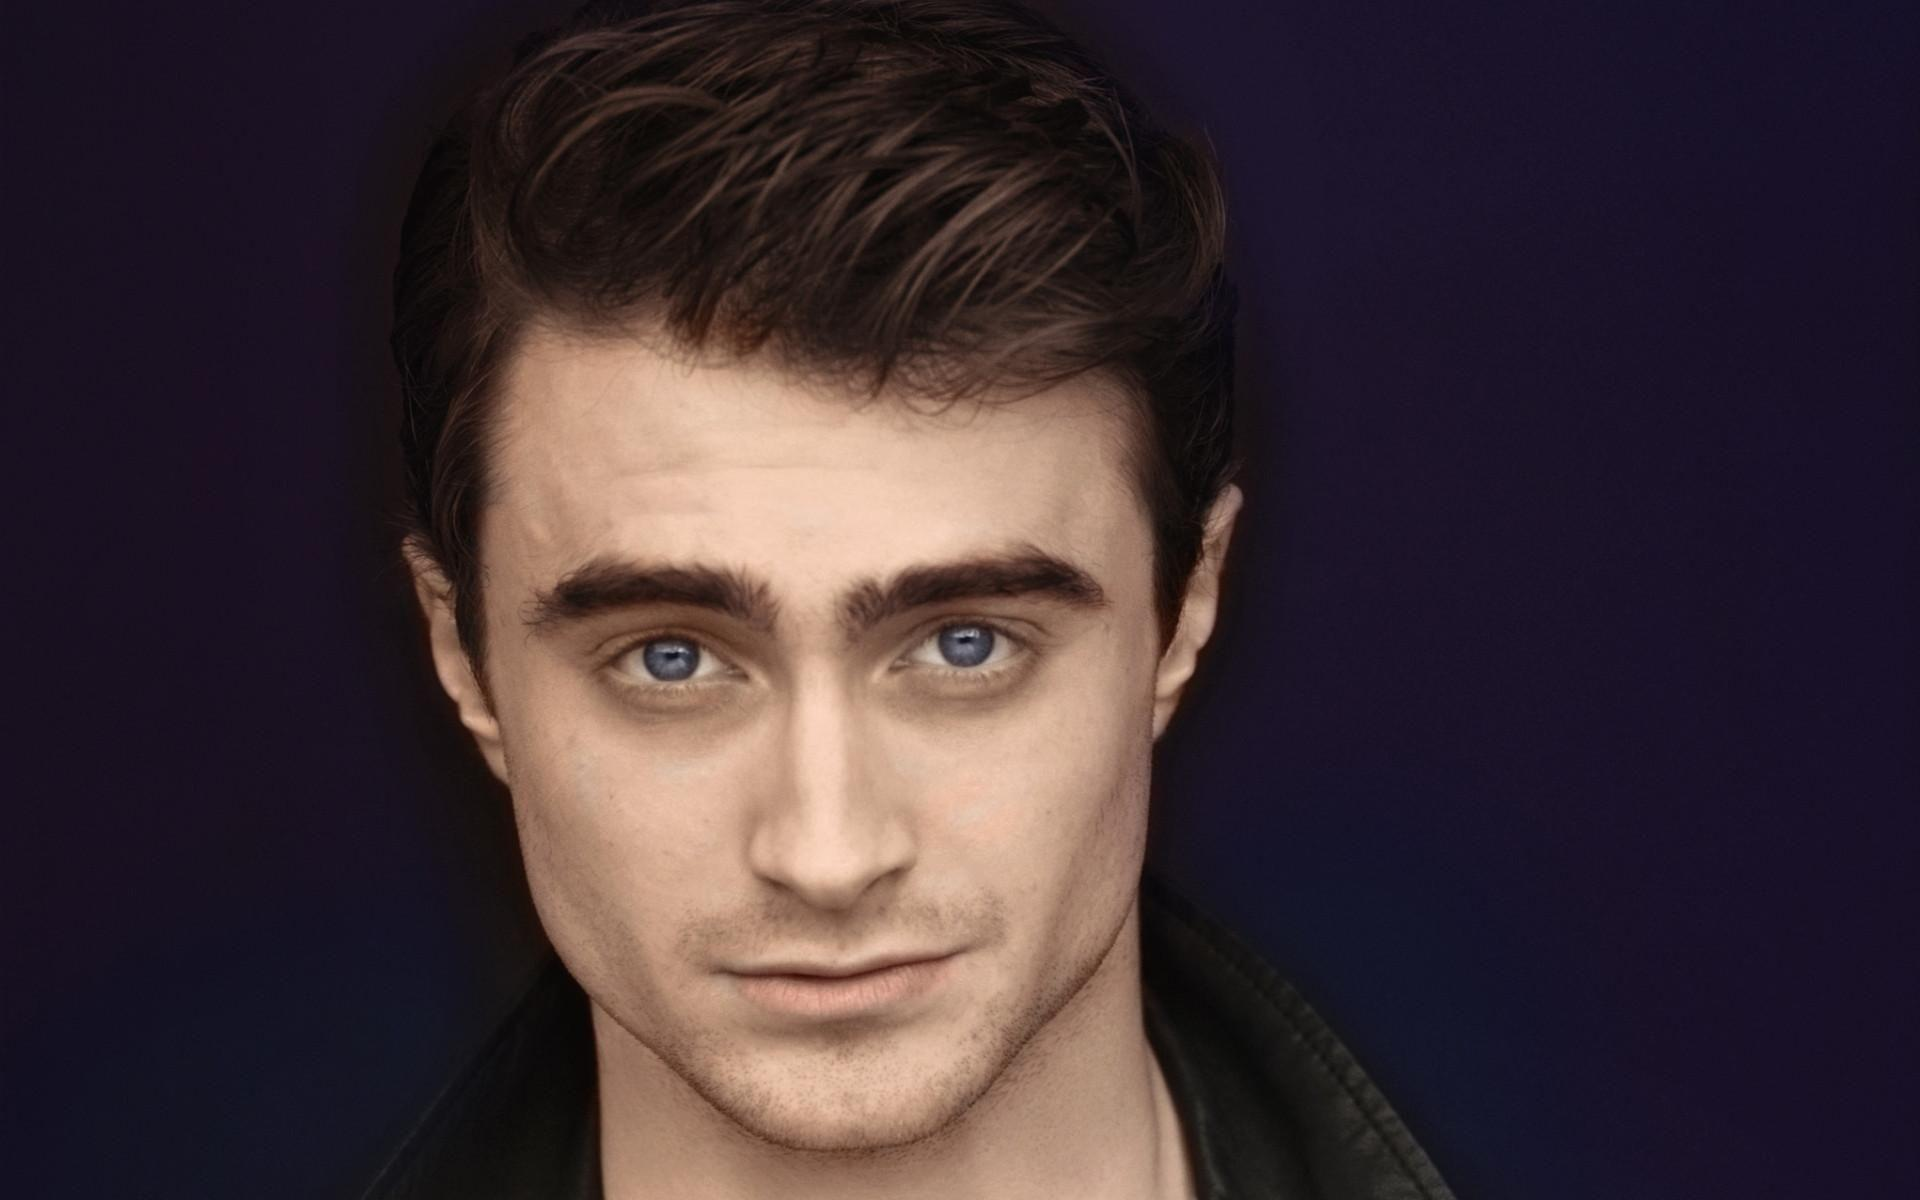 Daniel Radcliffe 2016 Wallpapers